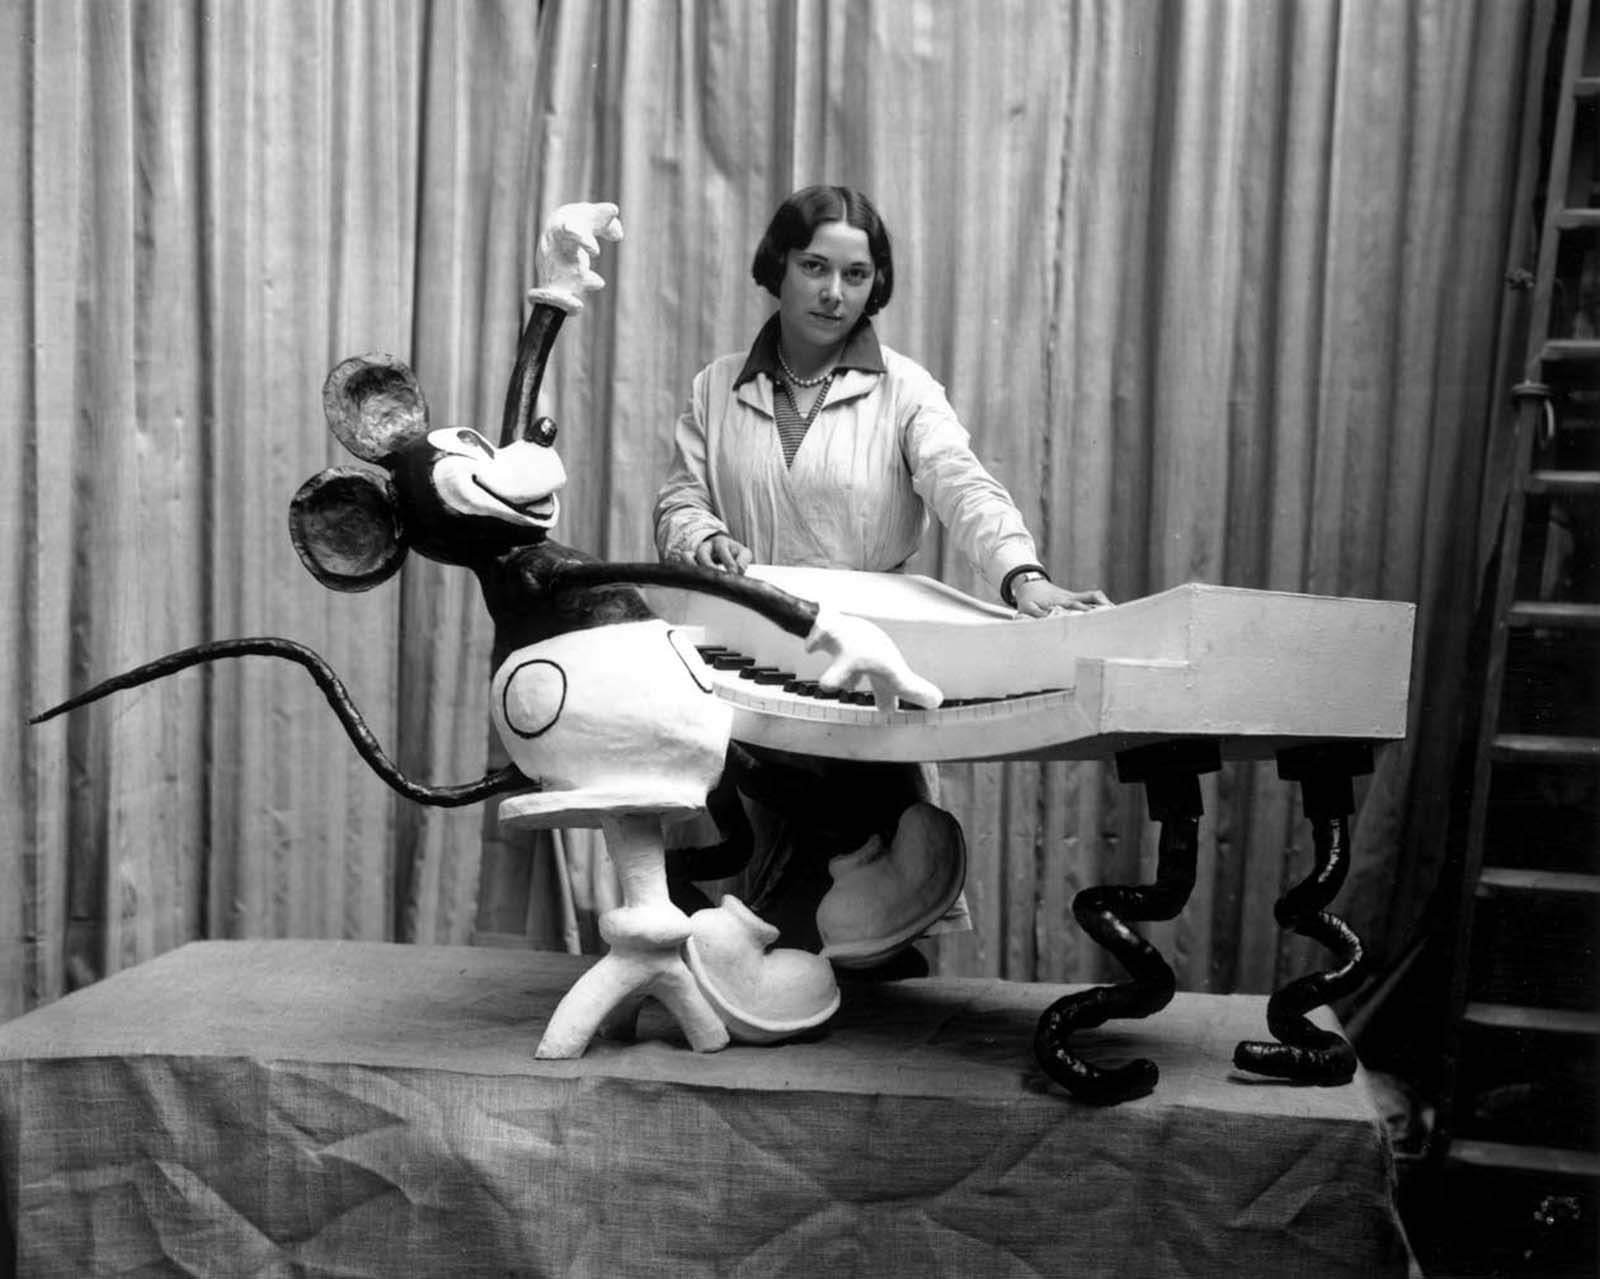 An employee at Madame Tussaud's waxworks museum on Marylebone Road, London, putting the finishing touches to a waxwork of Mickey Mouse at the keyboard. 1930.